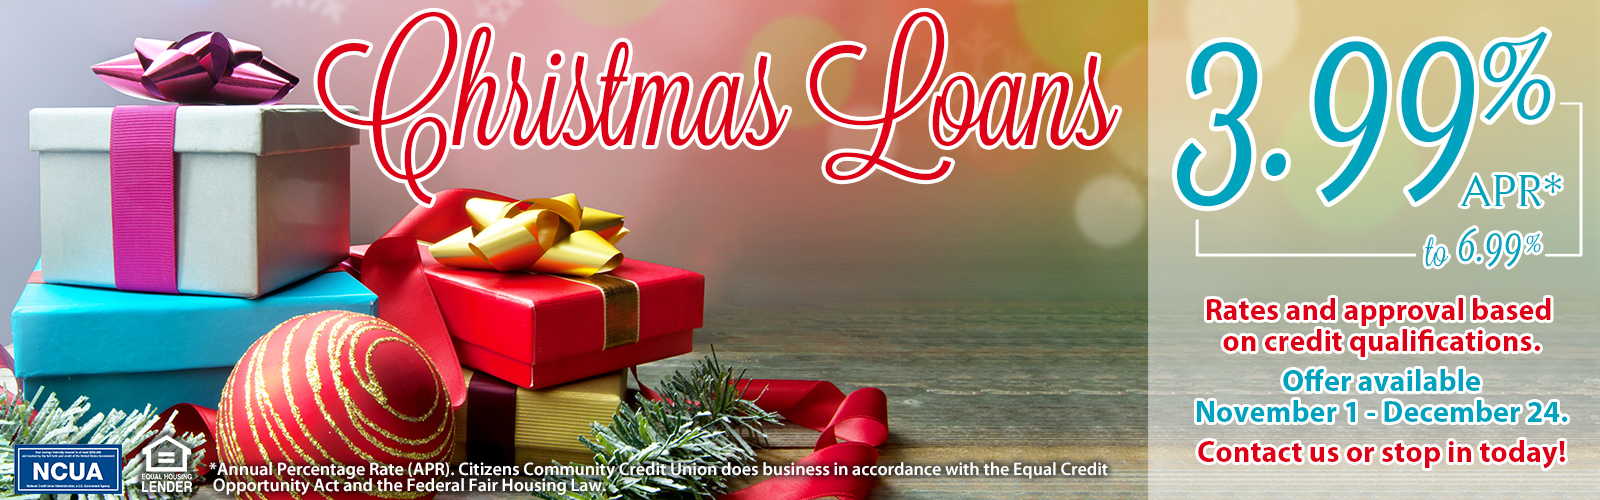 Christmas loans now available. Contact us or stop in today for more information!